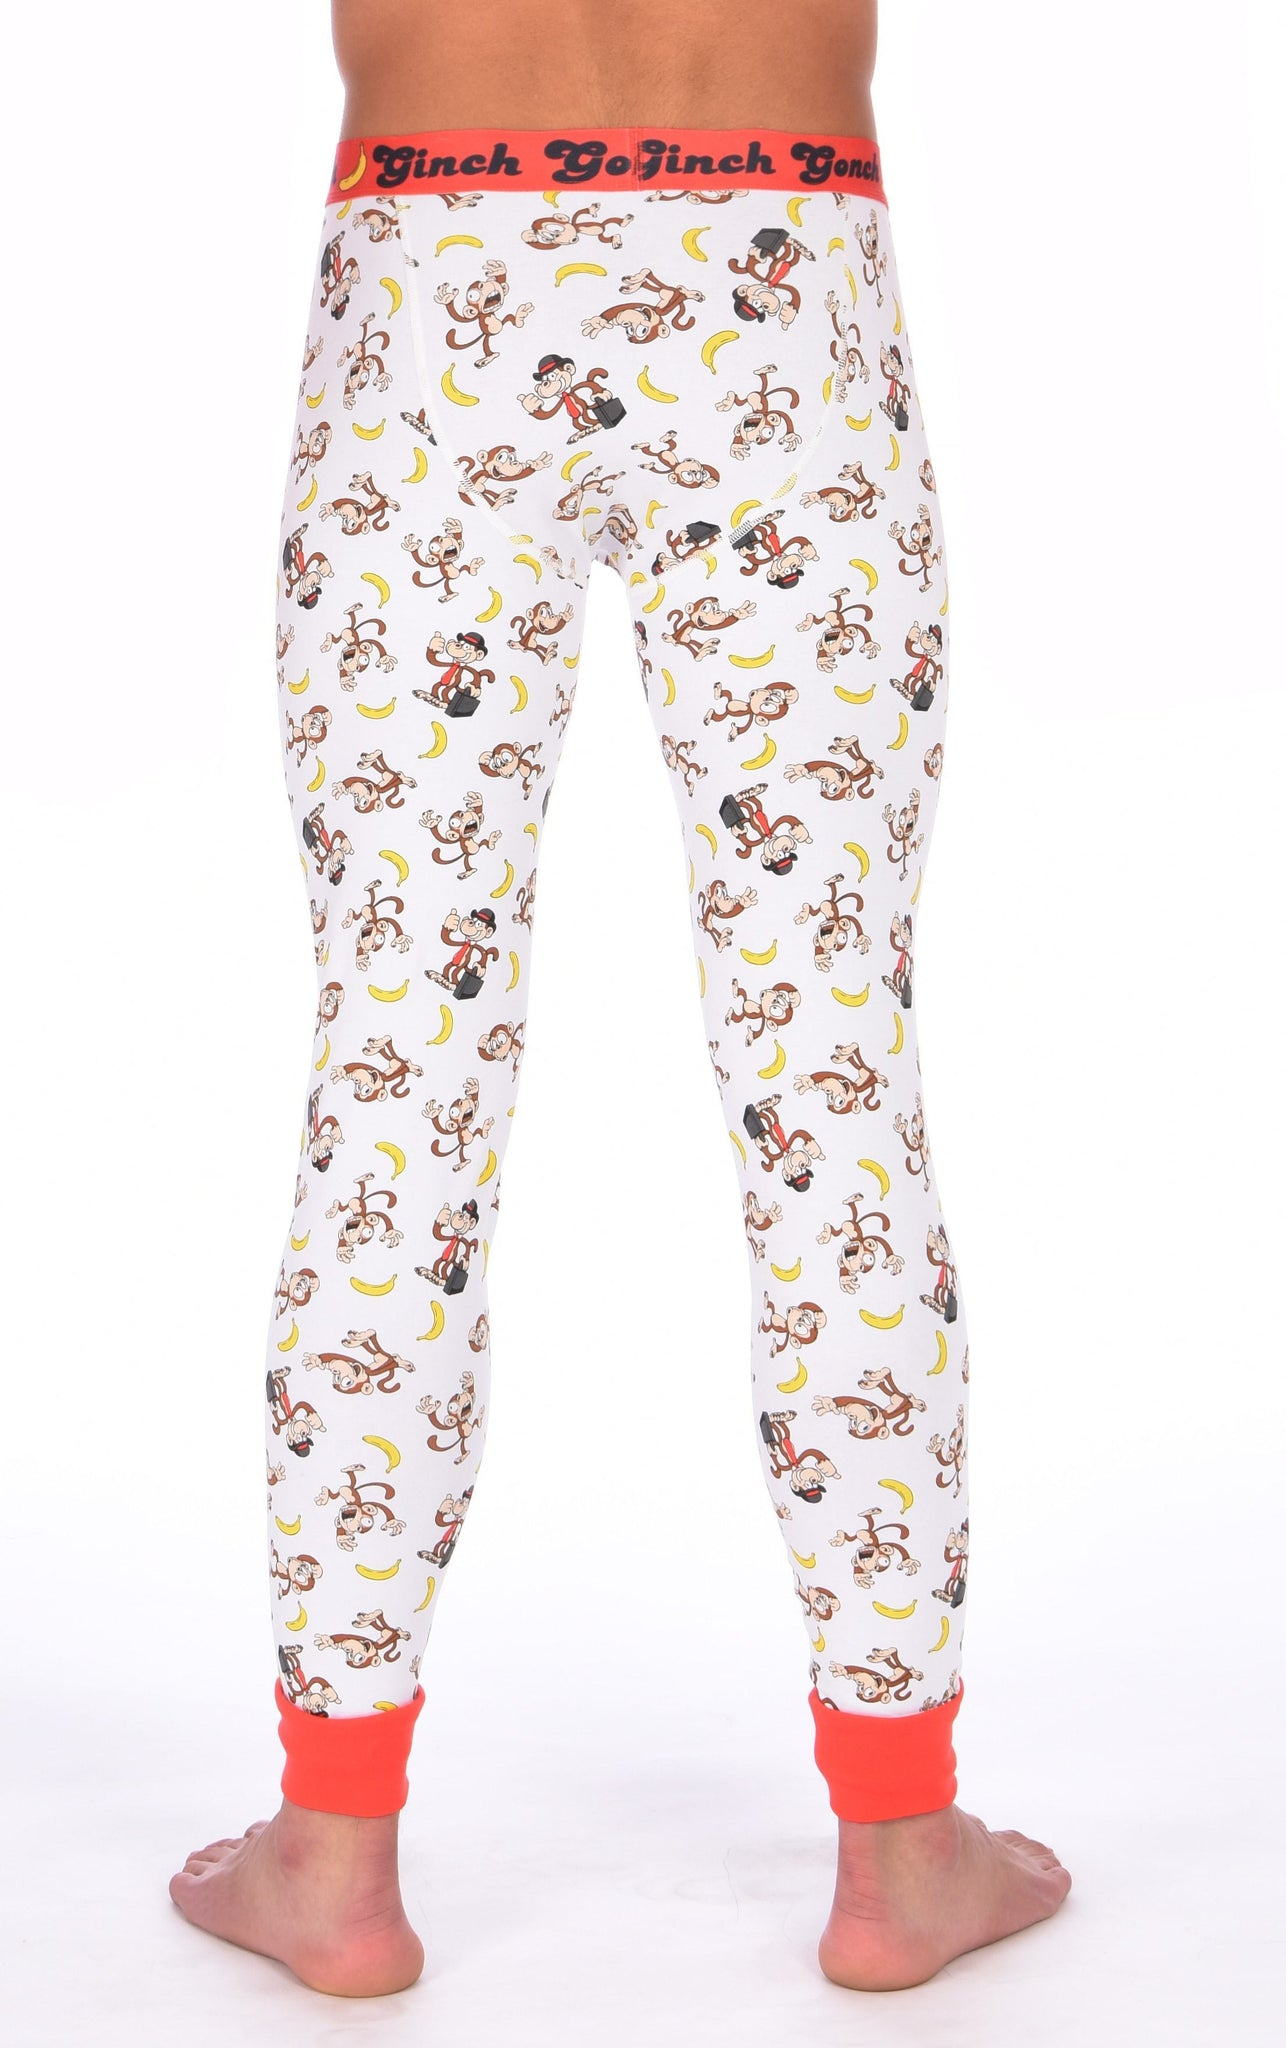 GG Ginch Gonch Gone Bananas leggings long johns men's long underwear white fabric with monkeys and bananas red trim and red printed waistband back